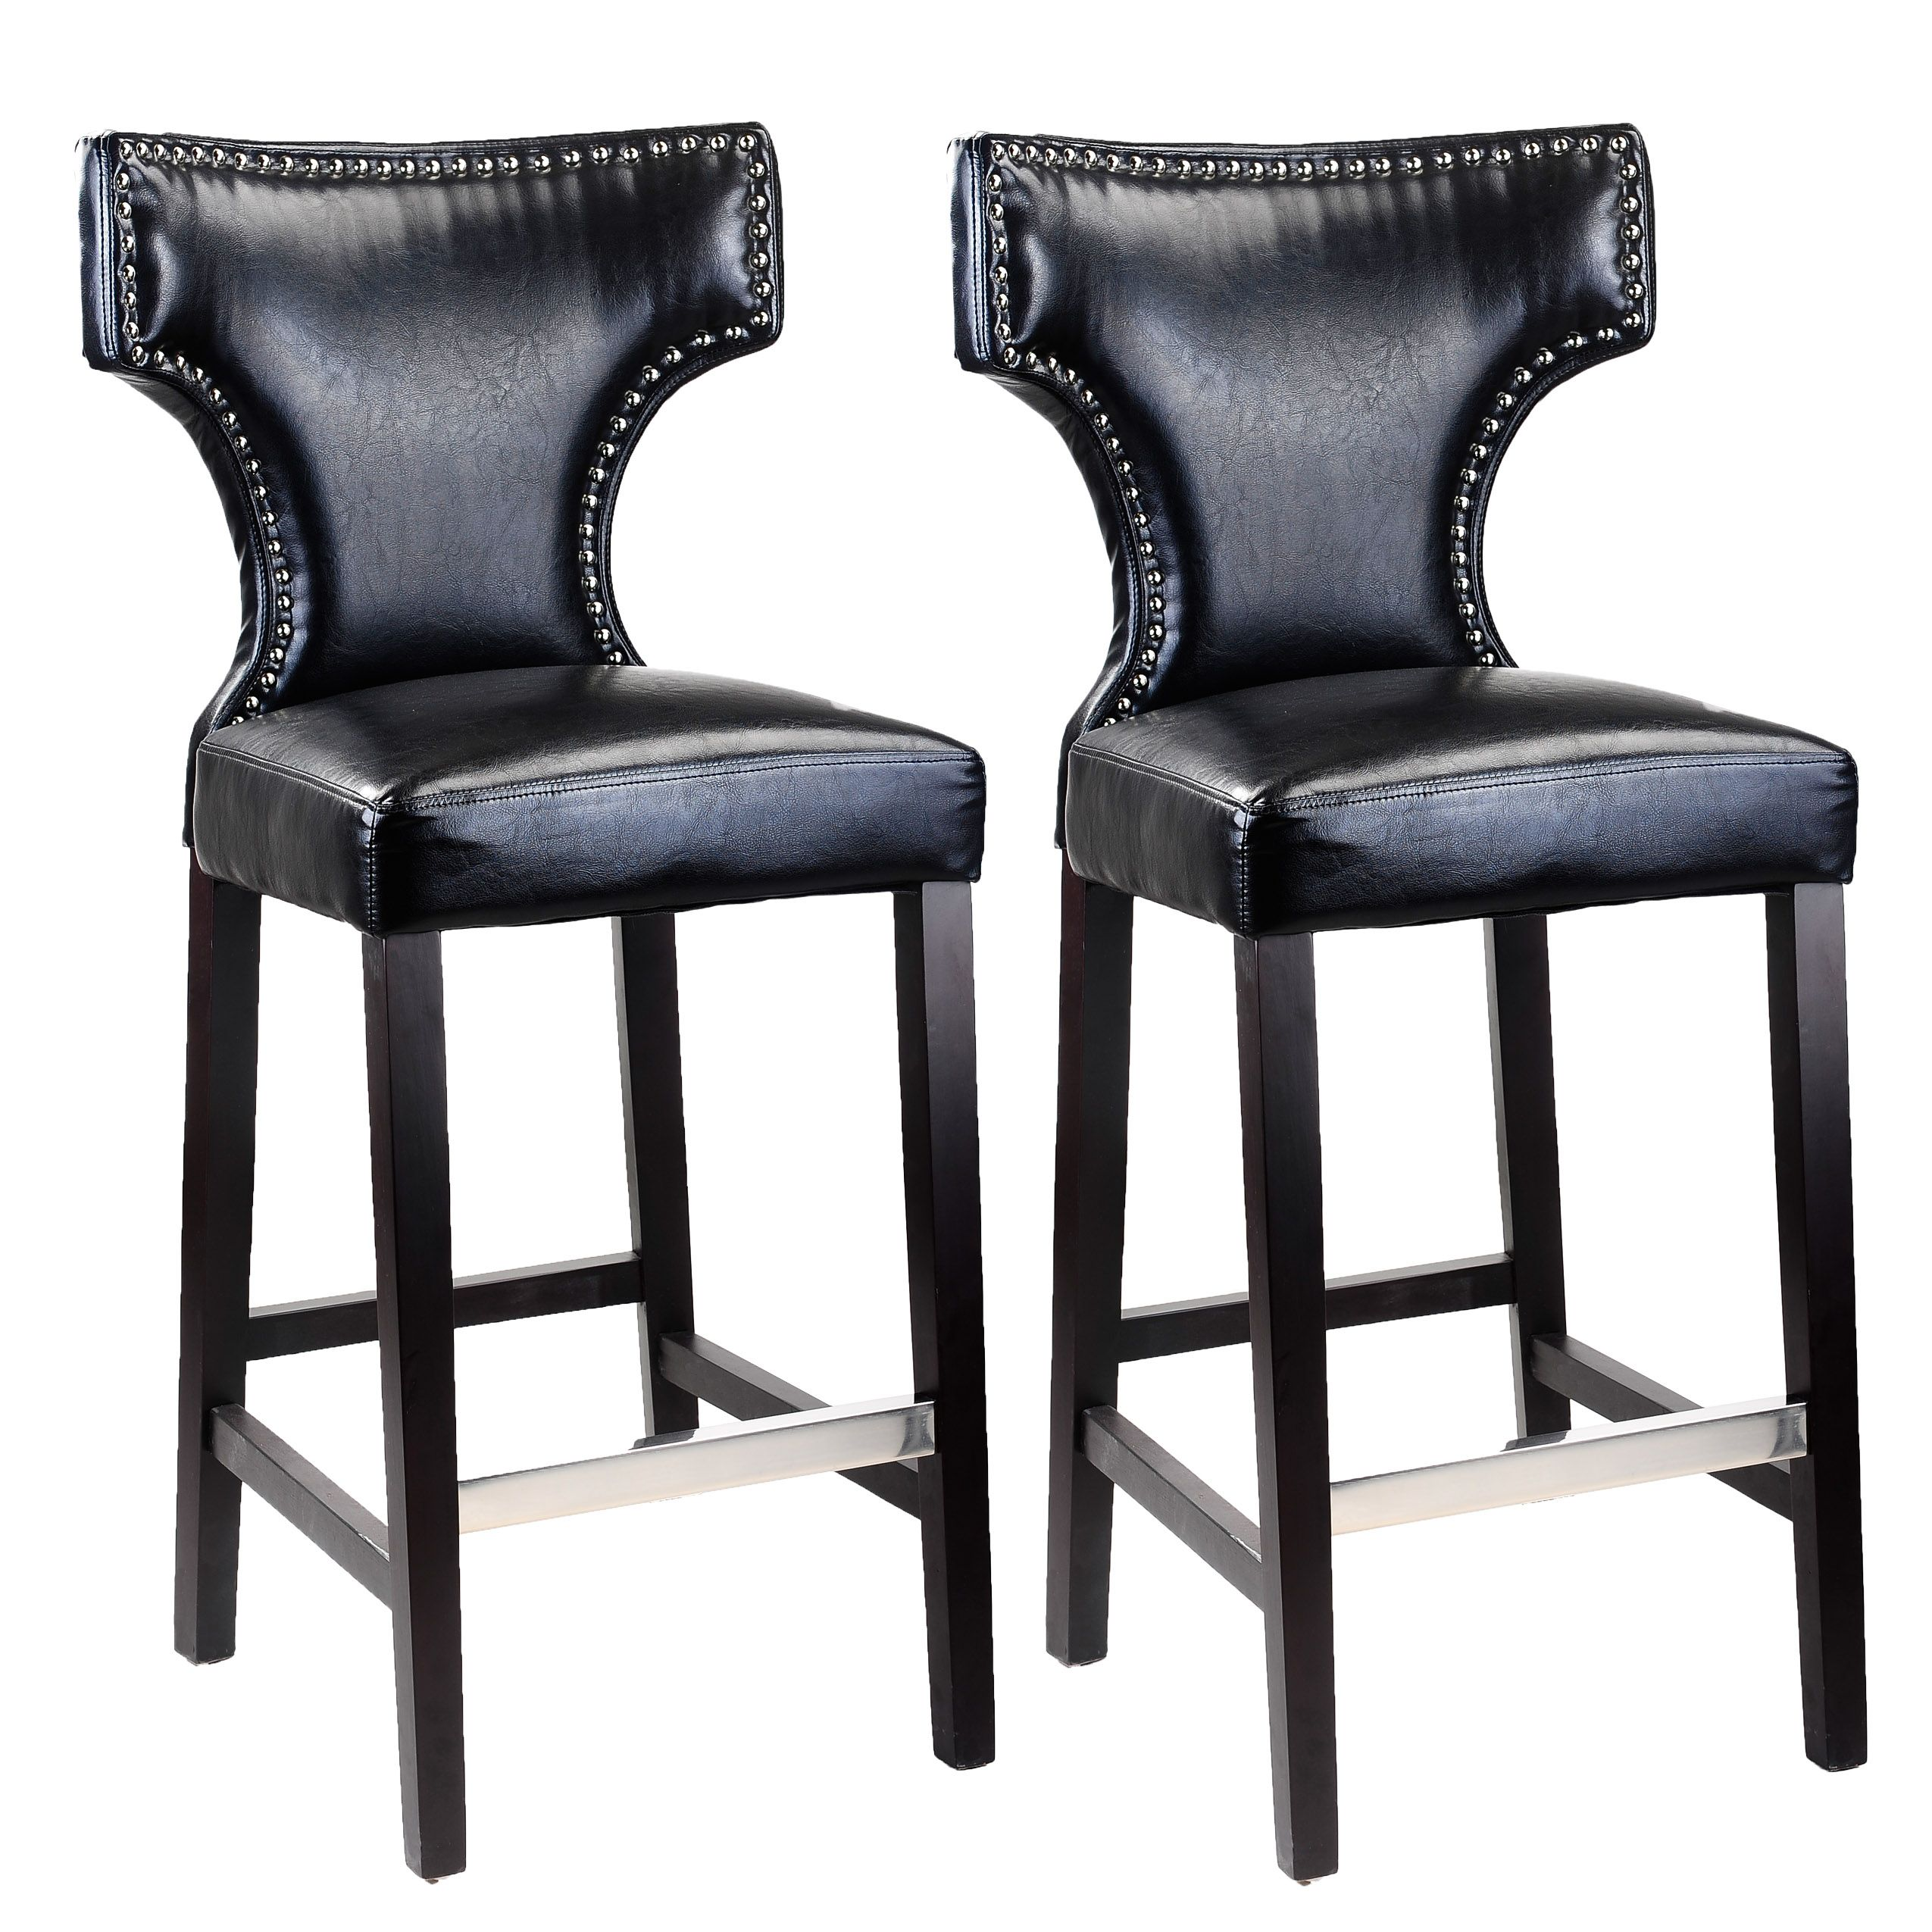 Corliving kings bar height barstool in bonded leather with metal